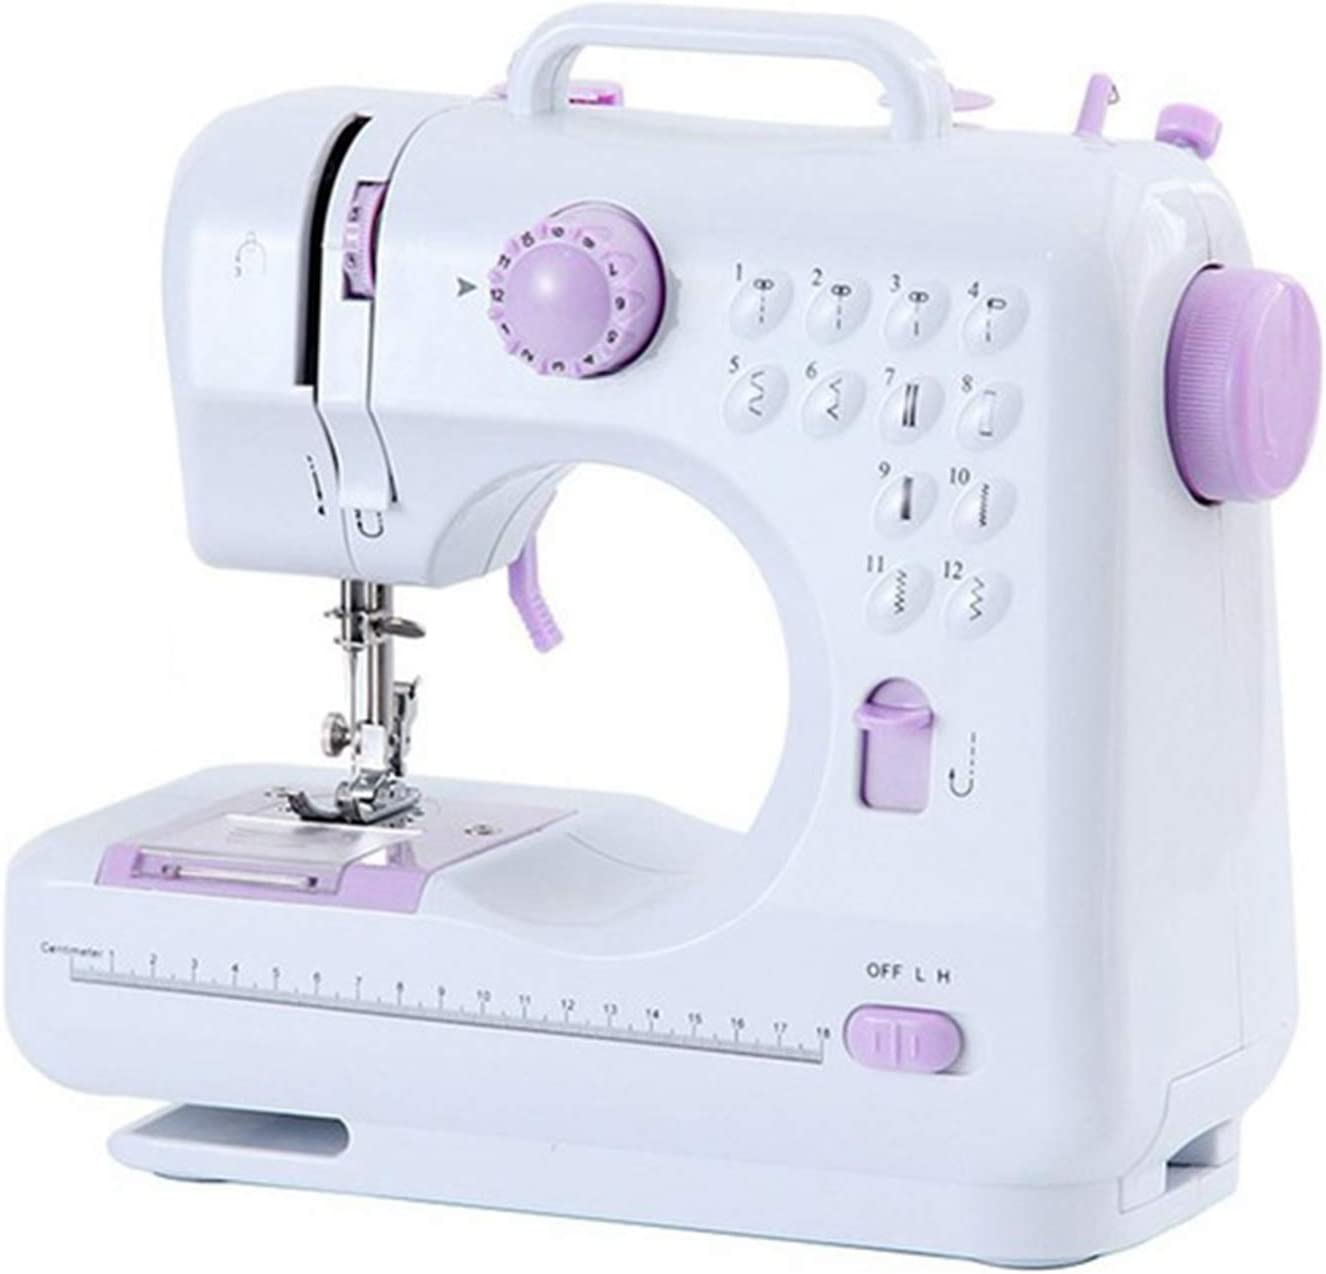 NDHENG Mini Sewing Machine (Including Extension Table and Sewing Supplies Set) - Small Electric Overlock Sewing Machines with 2 Speed 12 Built-in Stitch Patterns